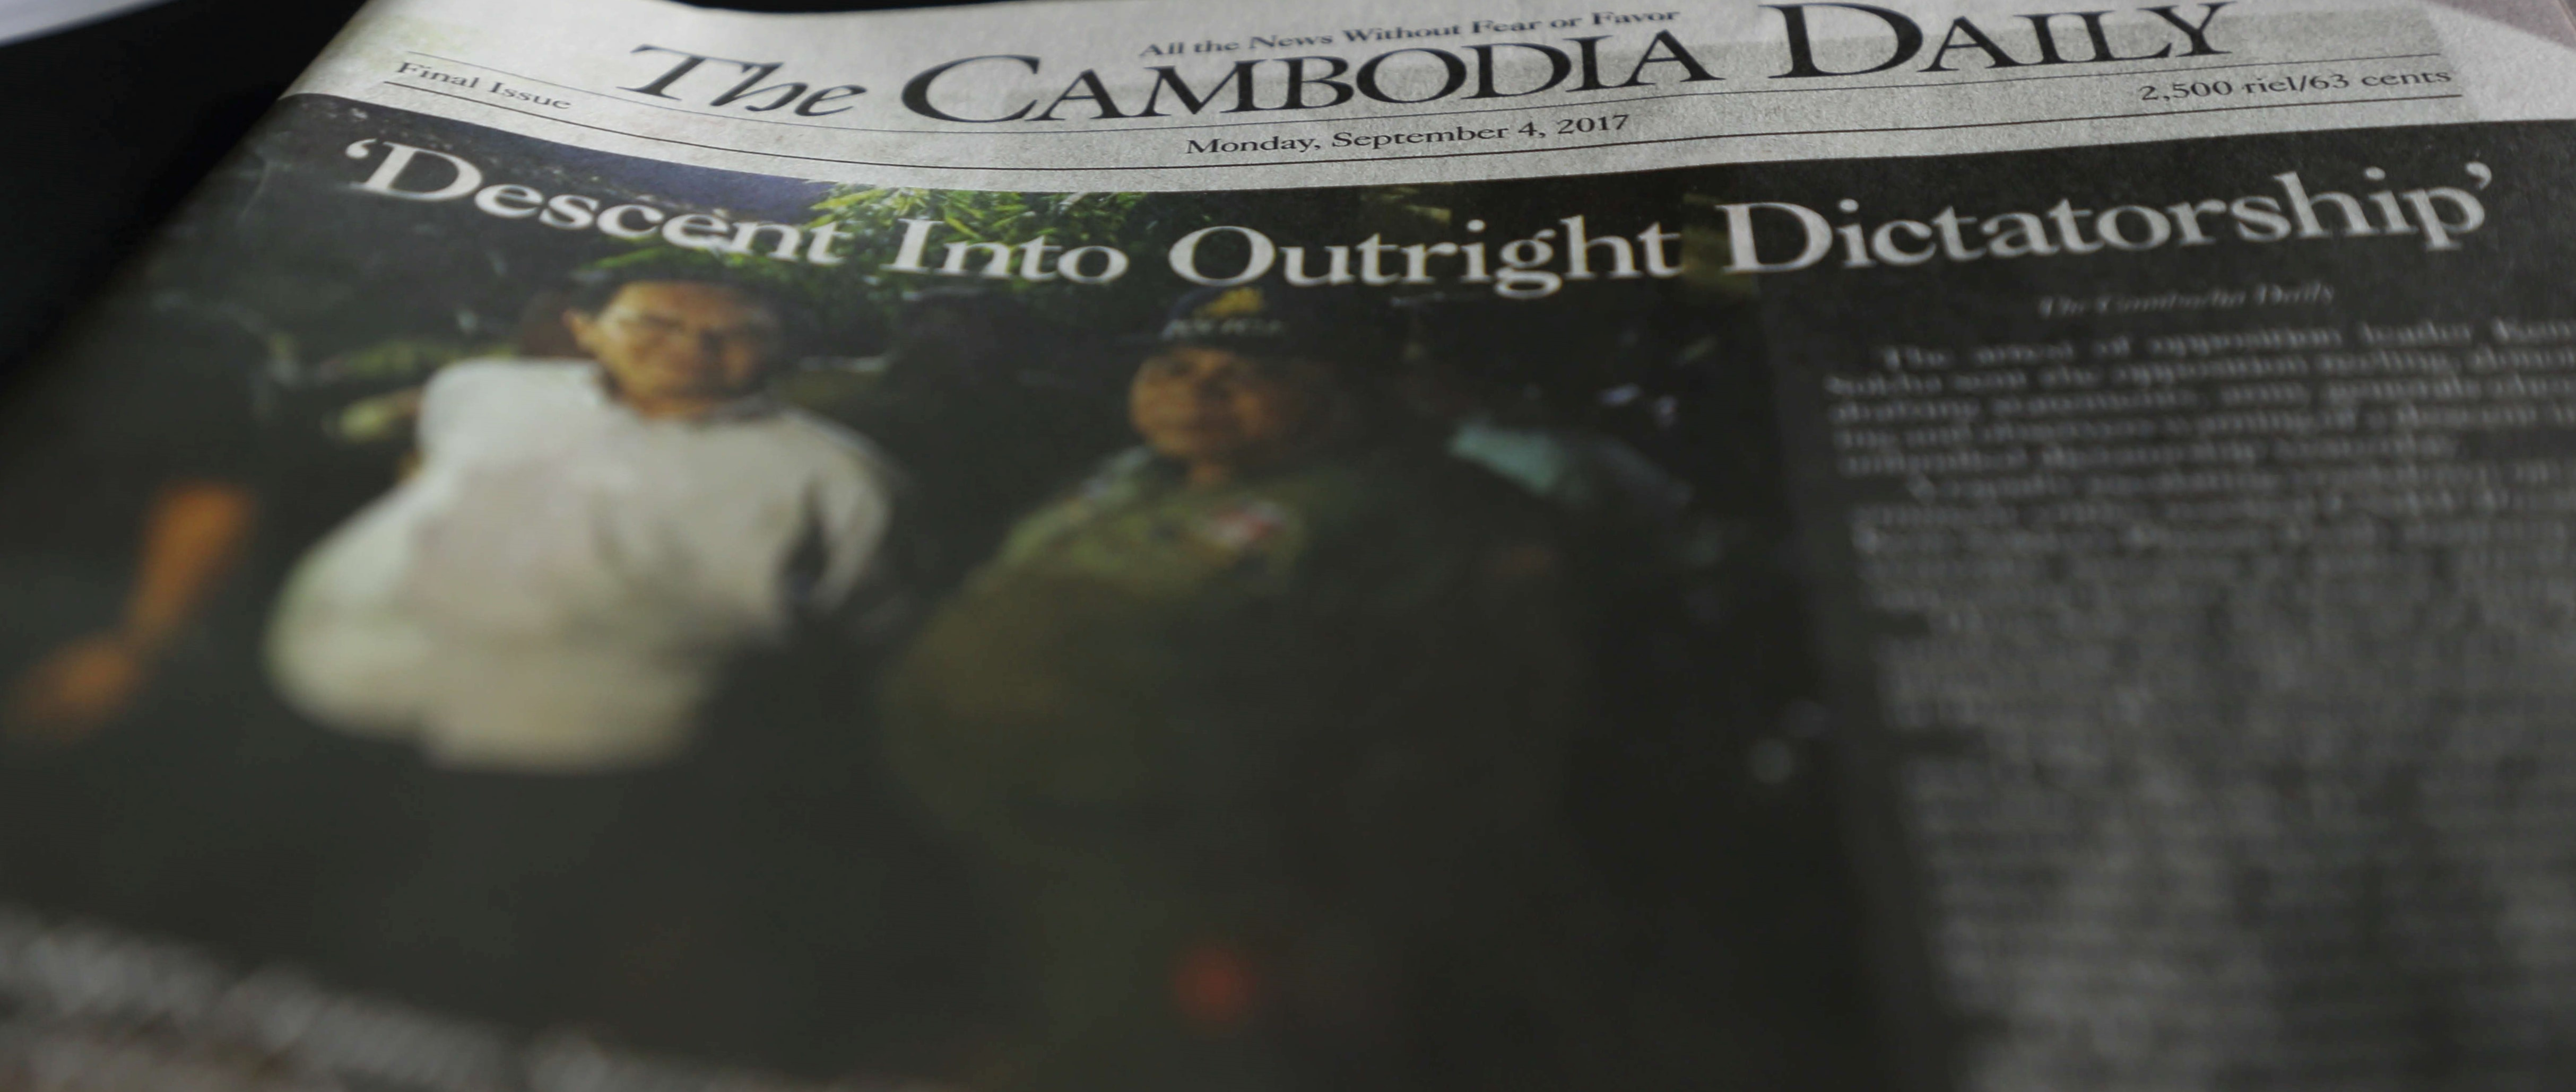 The final edition of the Cambodia Daily, September 2017 (Photo: Satoshi Takahashi/Getty Images)